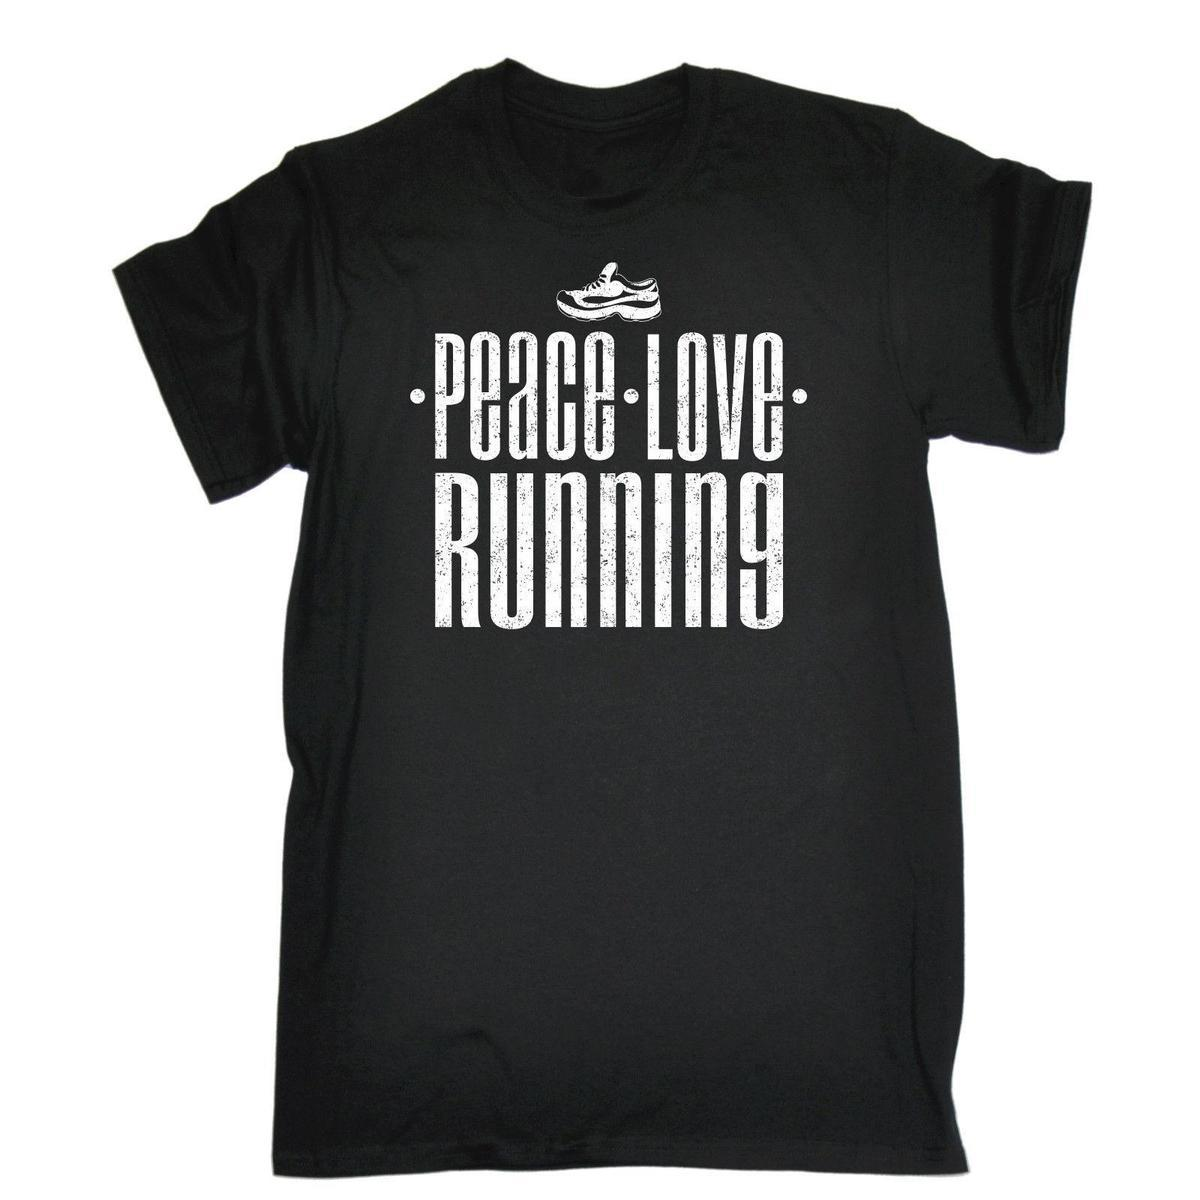 Peace Love Running T SHIRT Jogging Fitness Gym Training Tee Gift Birthday Funny Shirt And Shop Shirts Online From Lusi10 1263